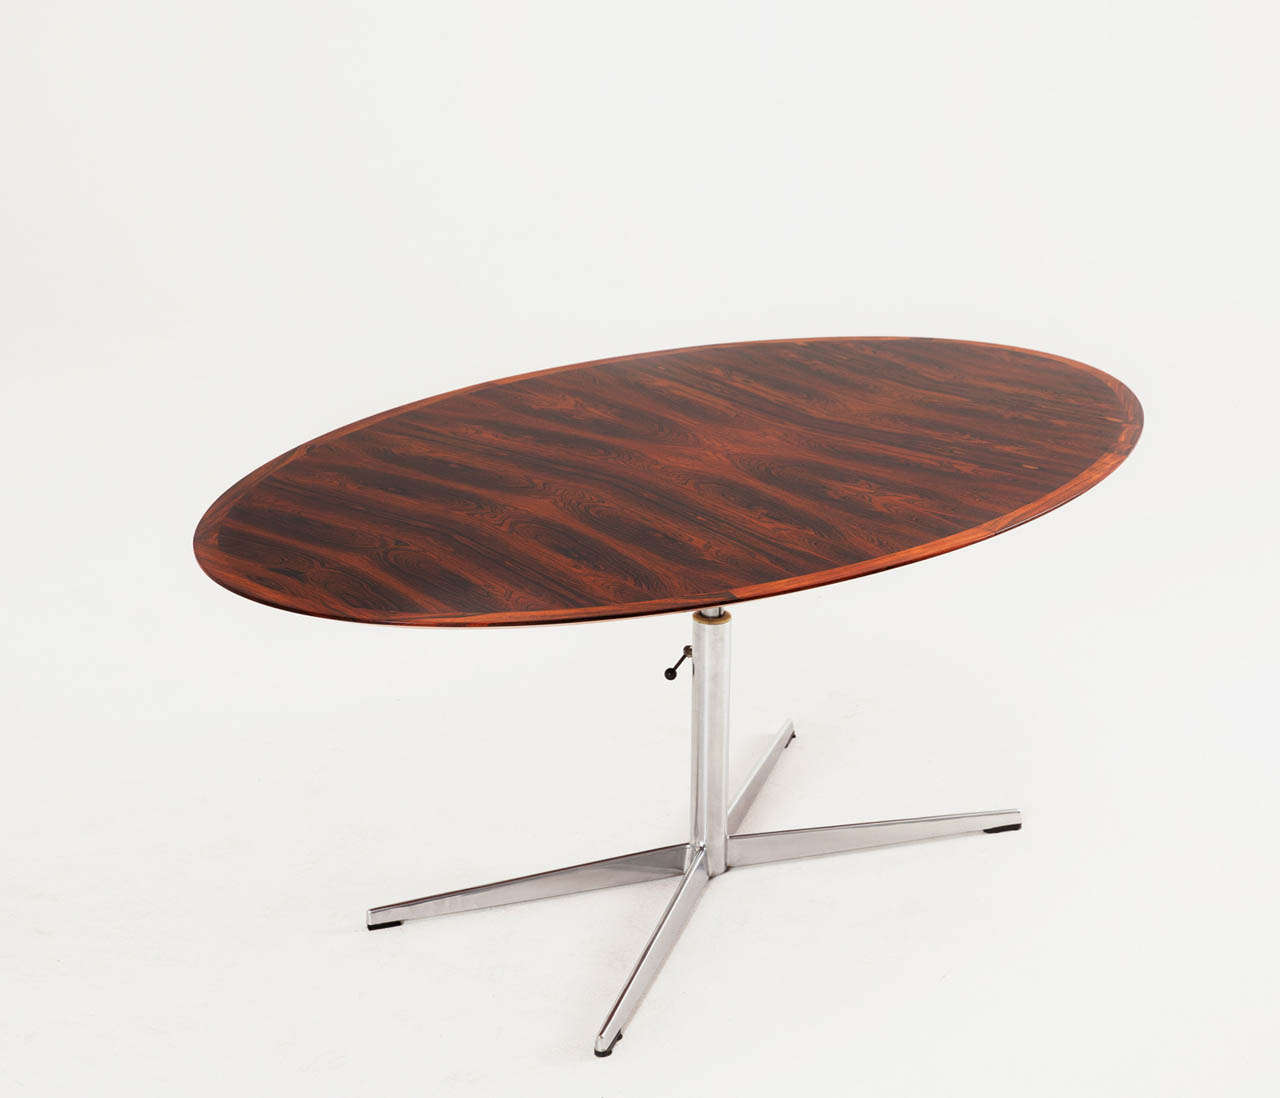 Oval Mahogany Table With Height Adjustable Pedestal Base 2